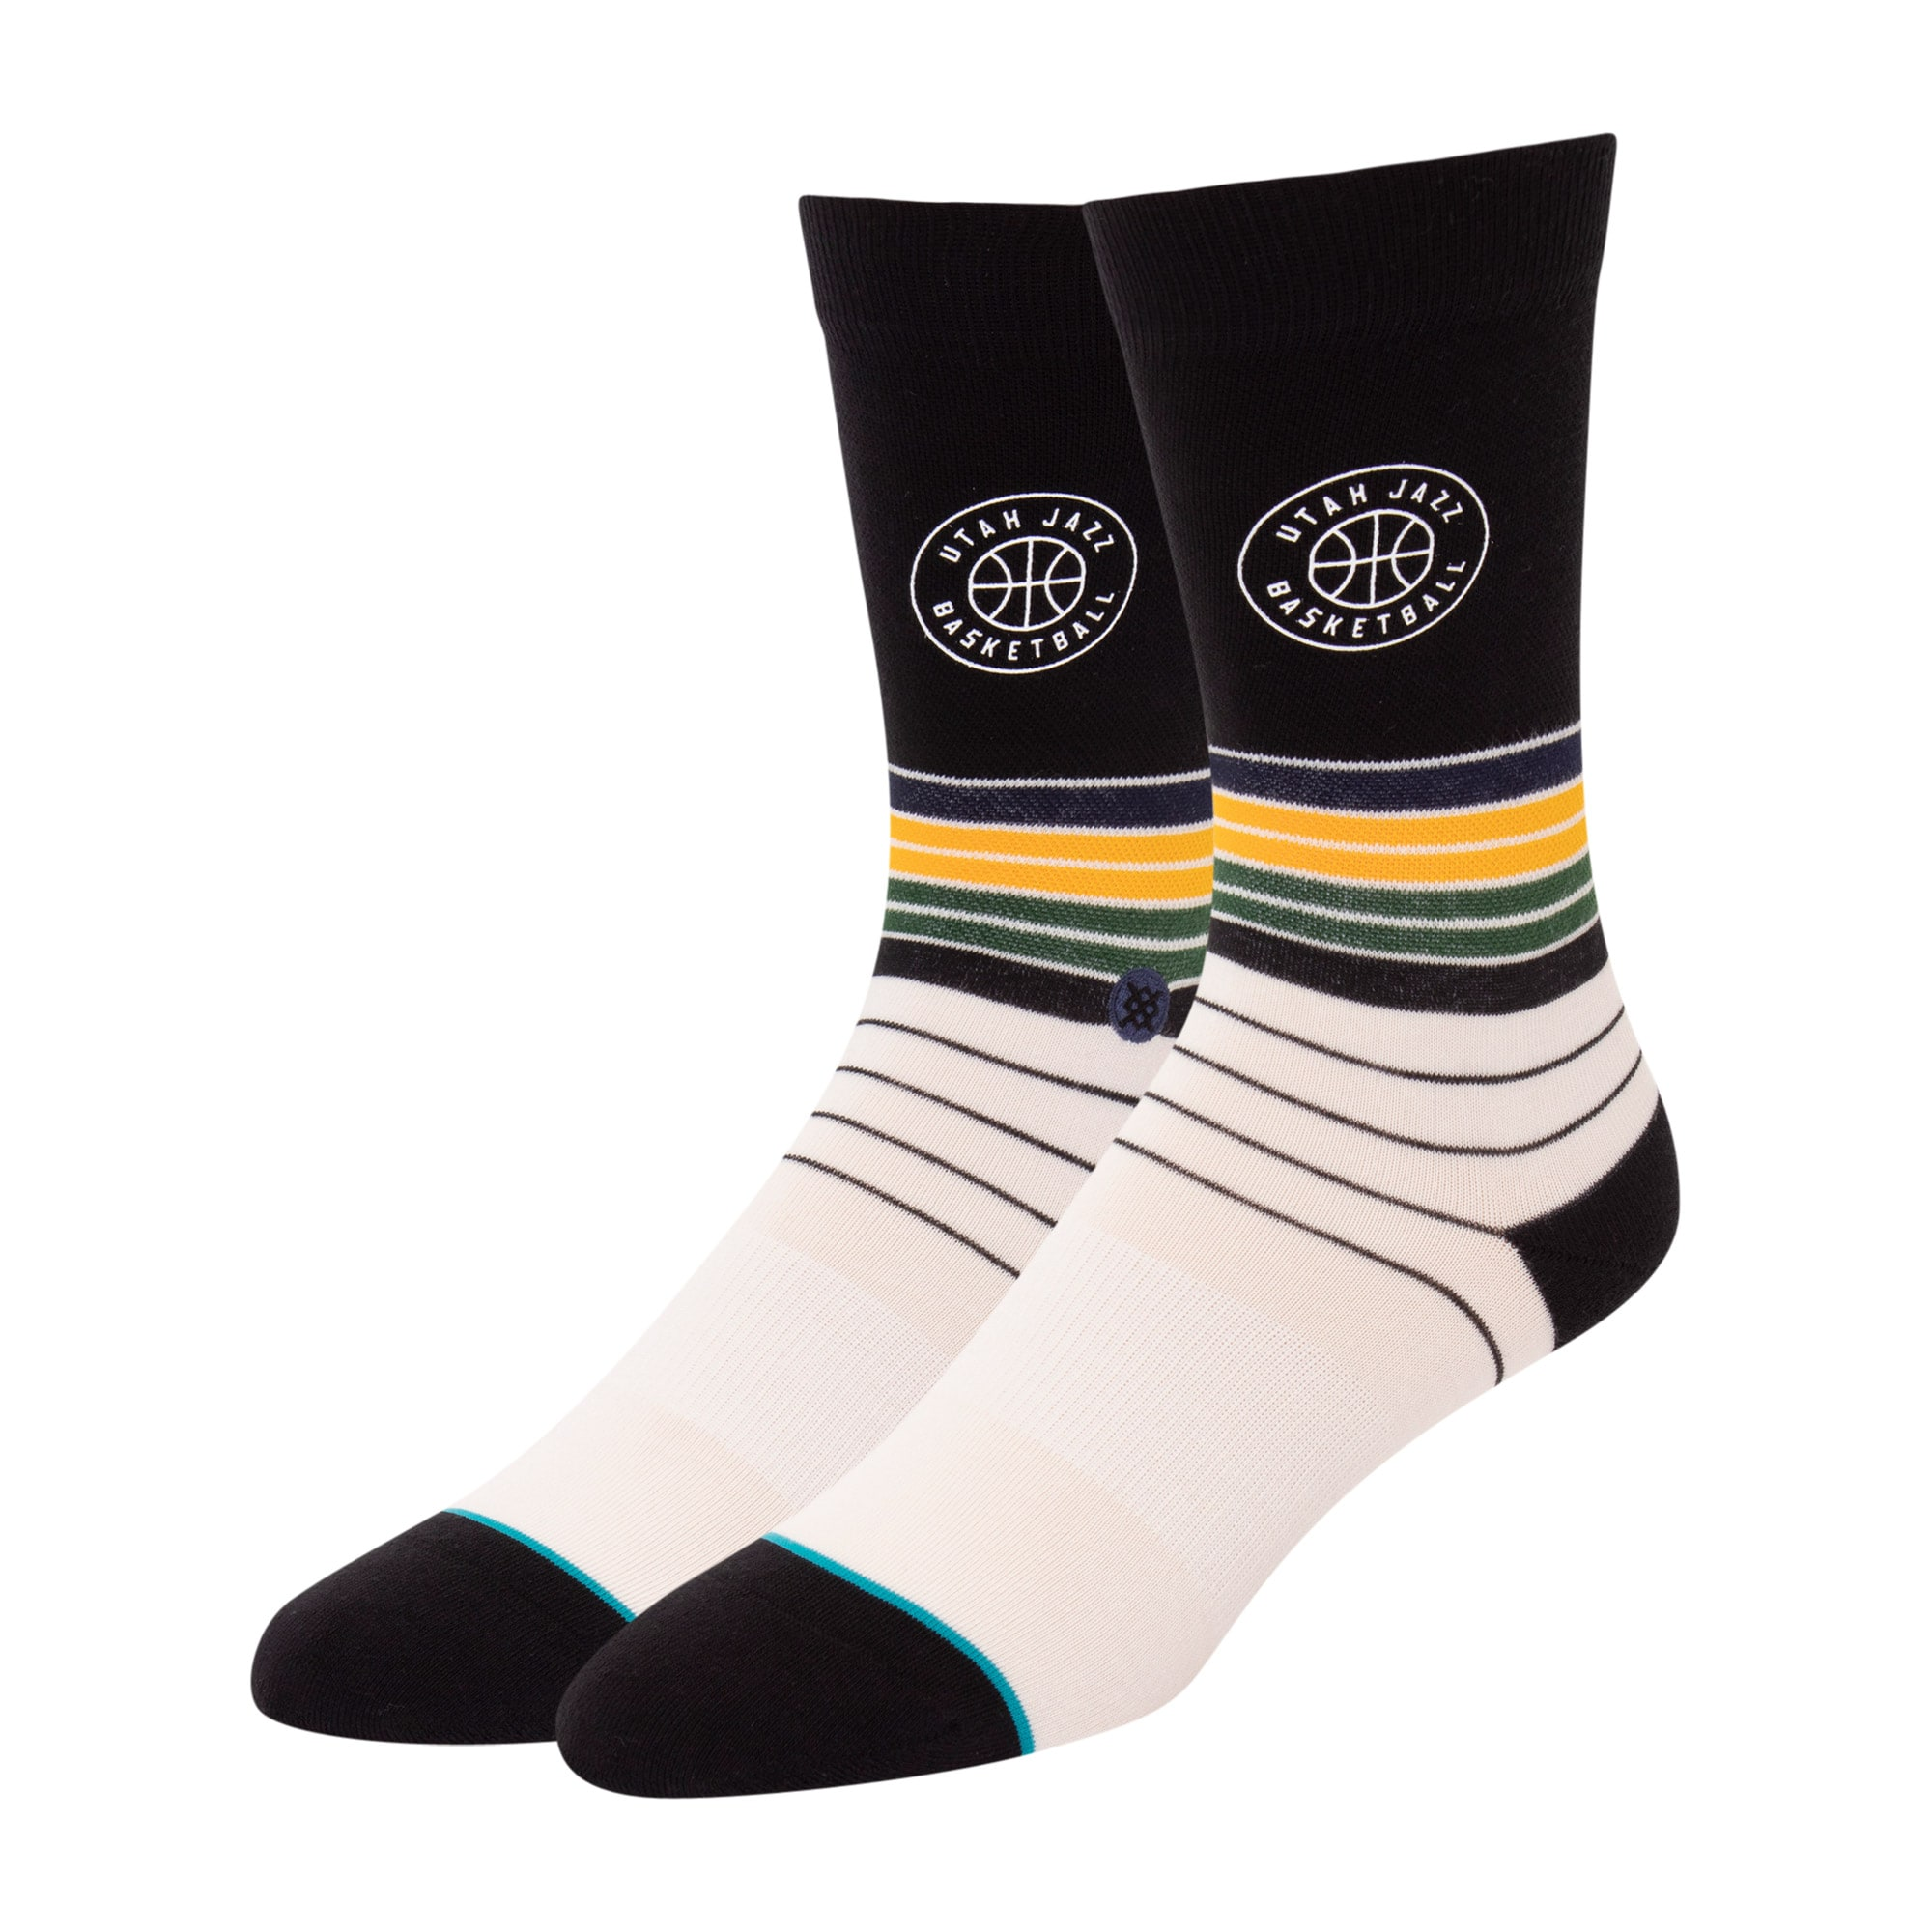 Utah Jazz Stance Baseline Dress Socks